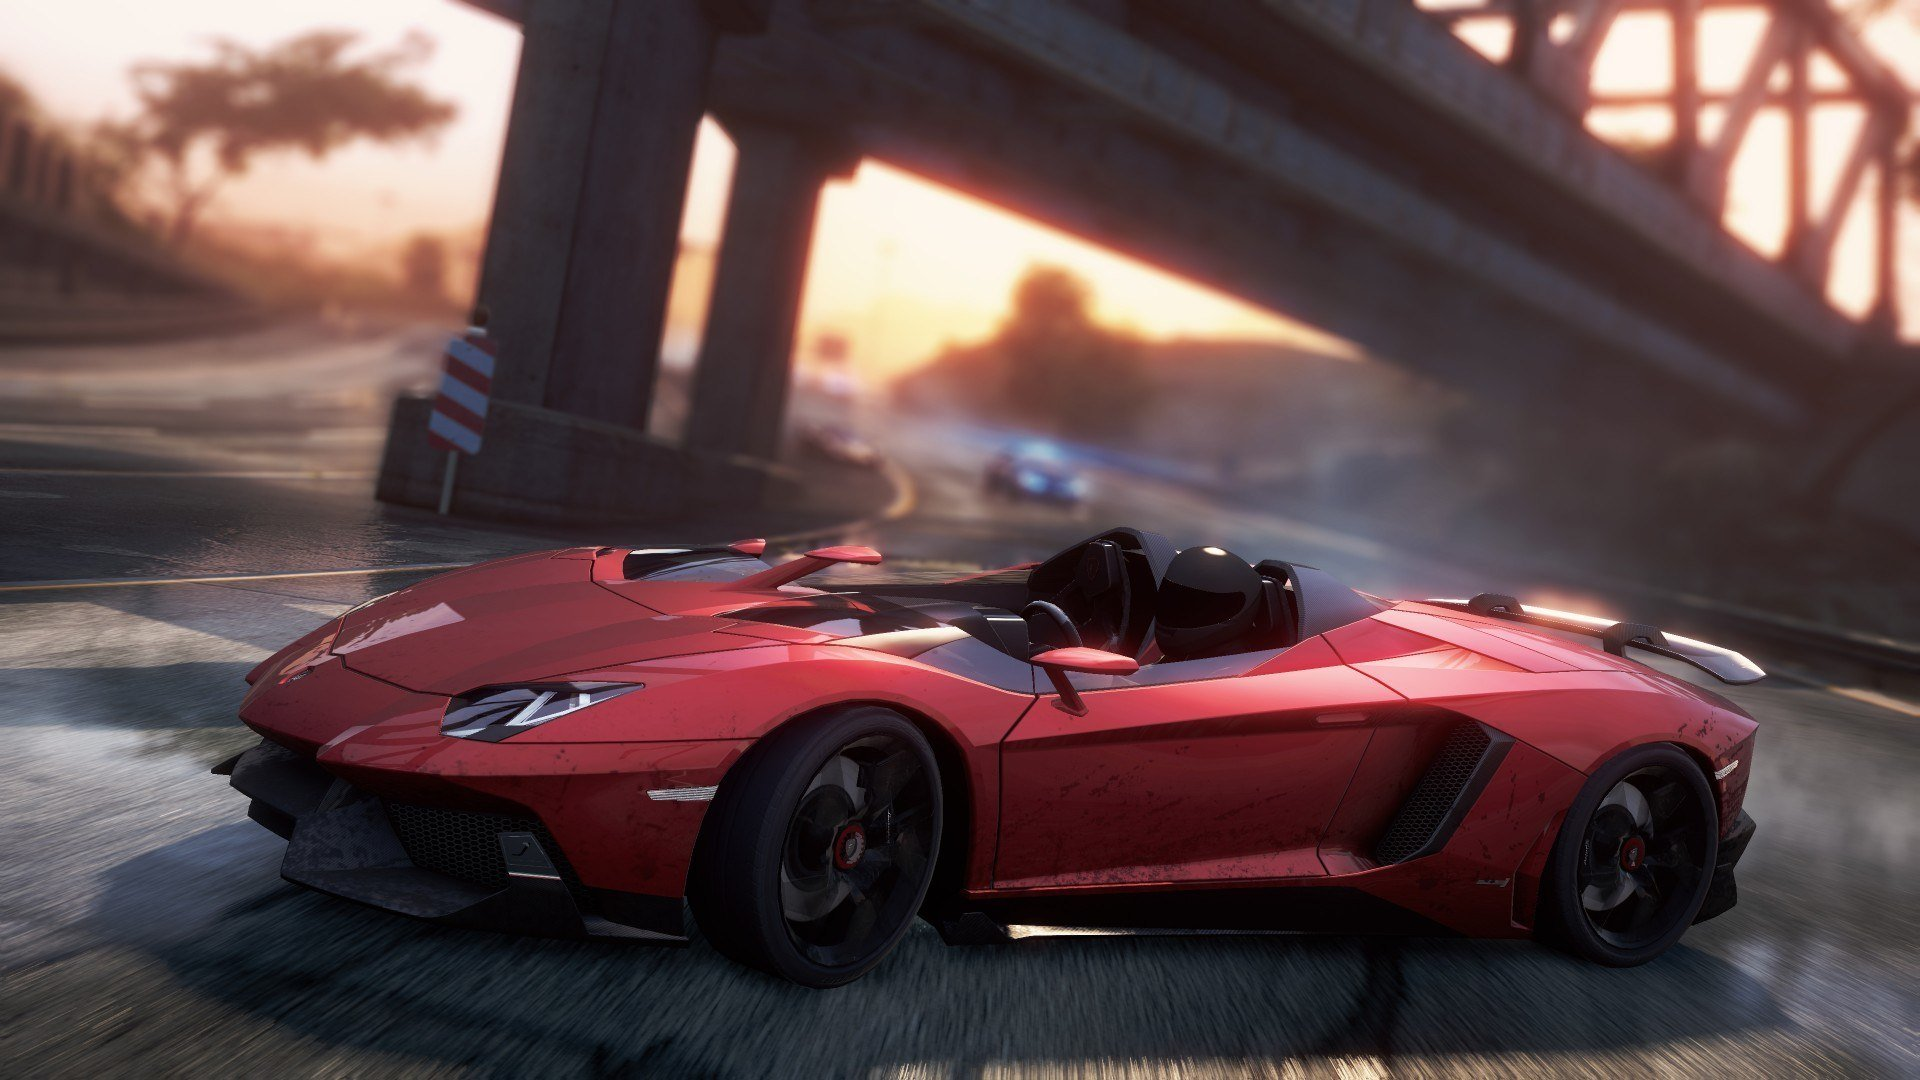 need for speed most wanted 2012 aventador j спорткар дорога гонка занос мост